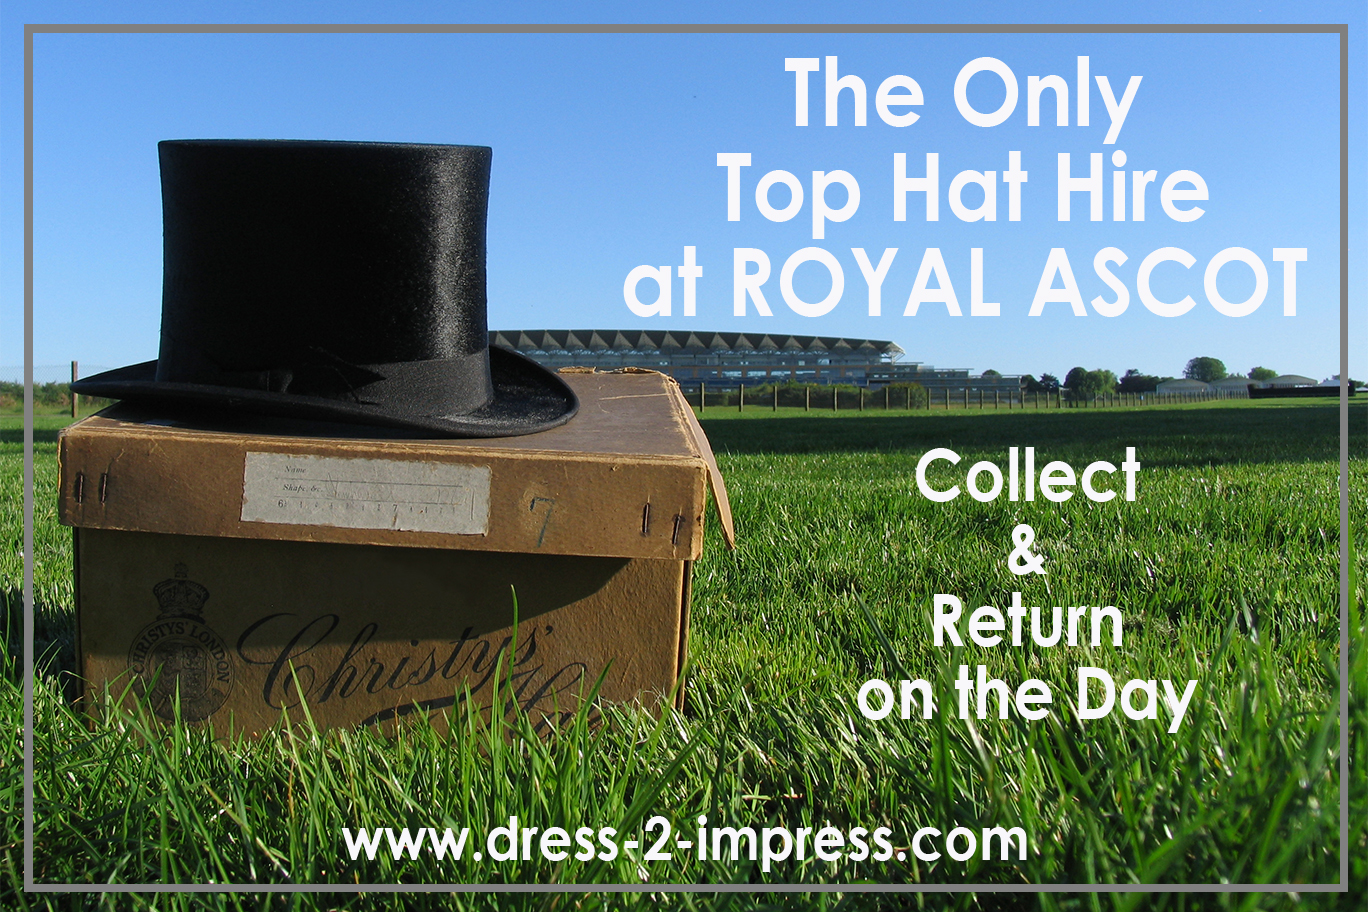 Mens Top Hat Hire. Top Hats for Ascot. Top Hats for Royal Ascot. Top Hat Hire at Royal Ascot Races. Vintage Silk Top Hats. Top Hat Hire for Ascot. Top Hat Hire Royal Ascot. Top Hats for weddings, available on Mail Order. Top Hat Rental Royal Ascot.